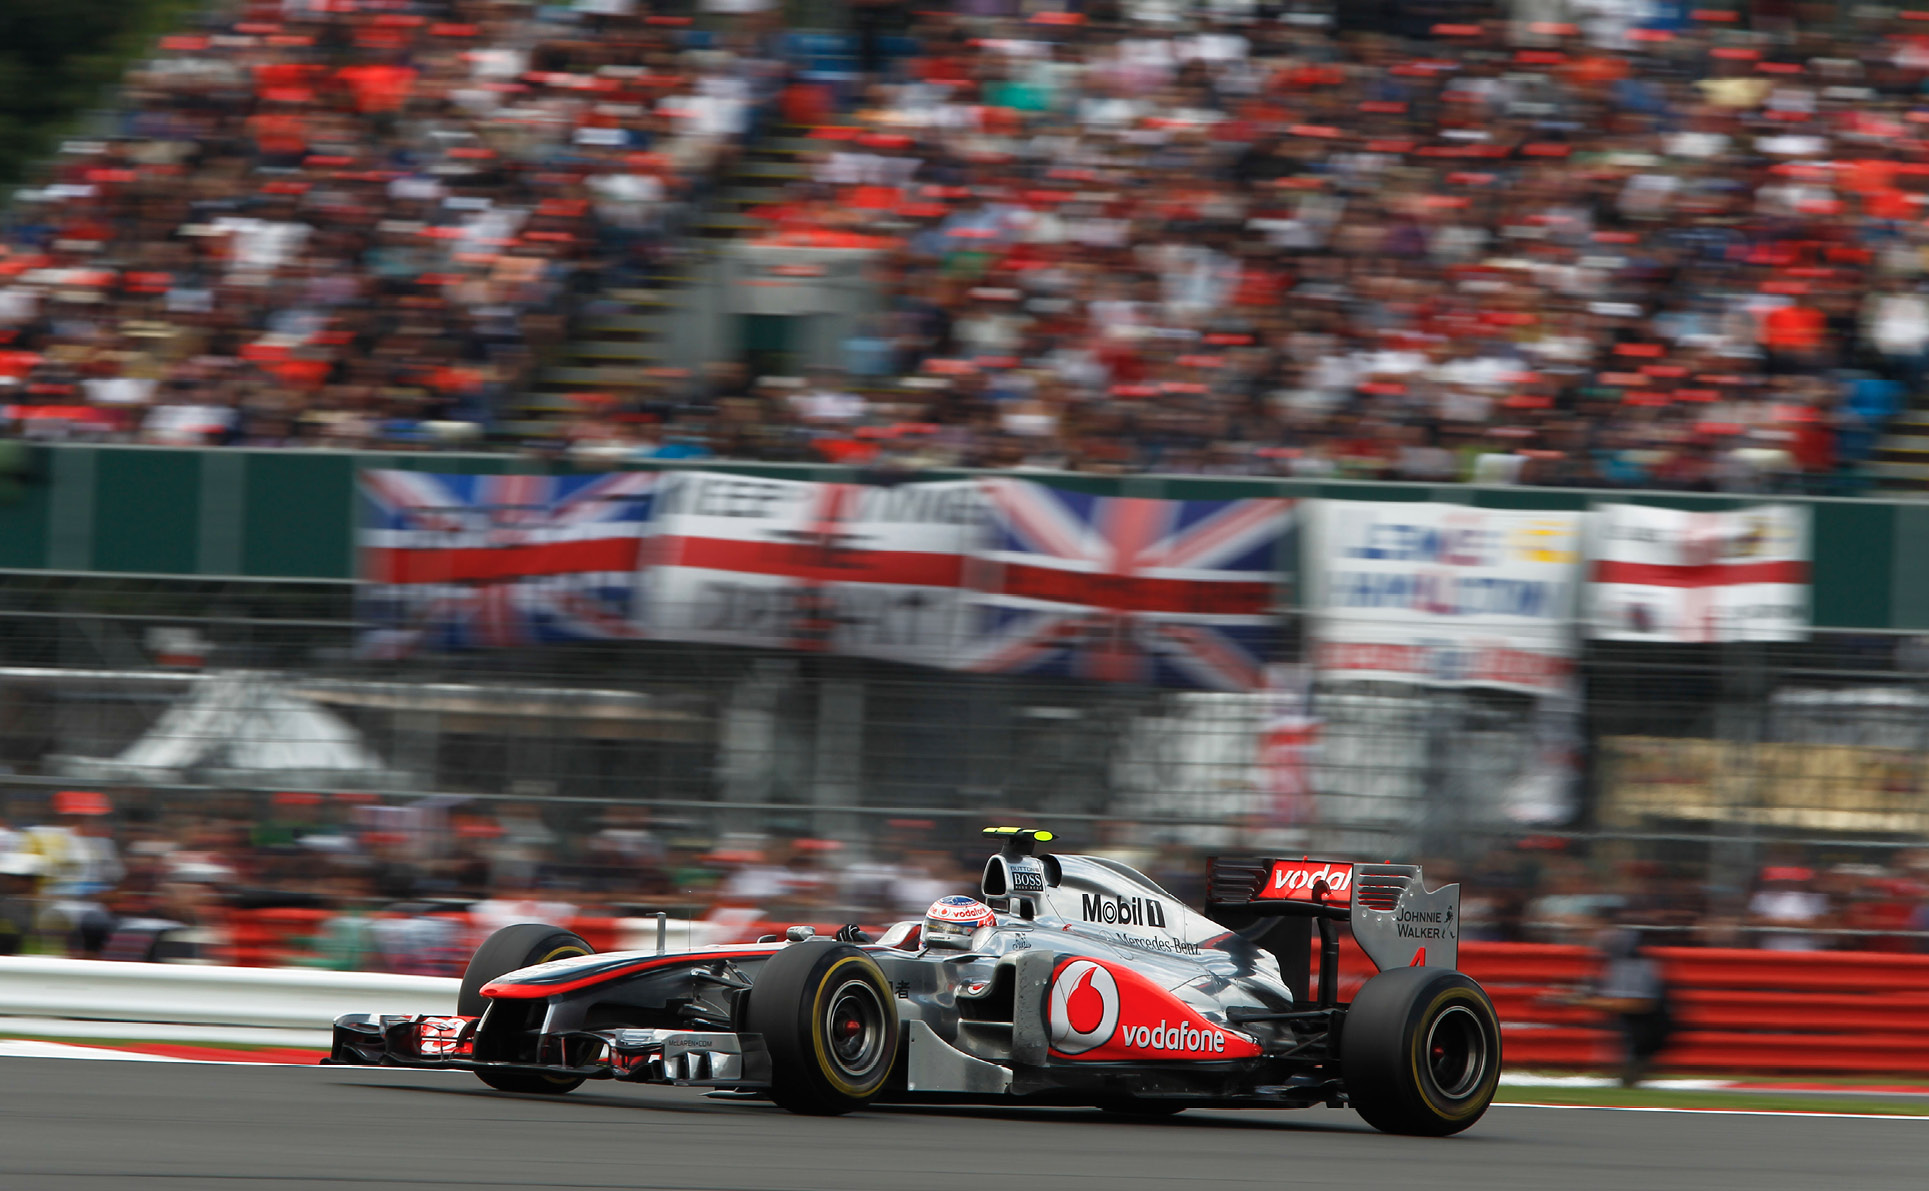 Jenson Button never had the luck when racing in front of his home crowd